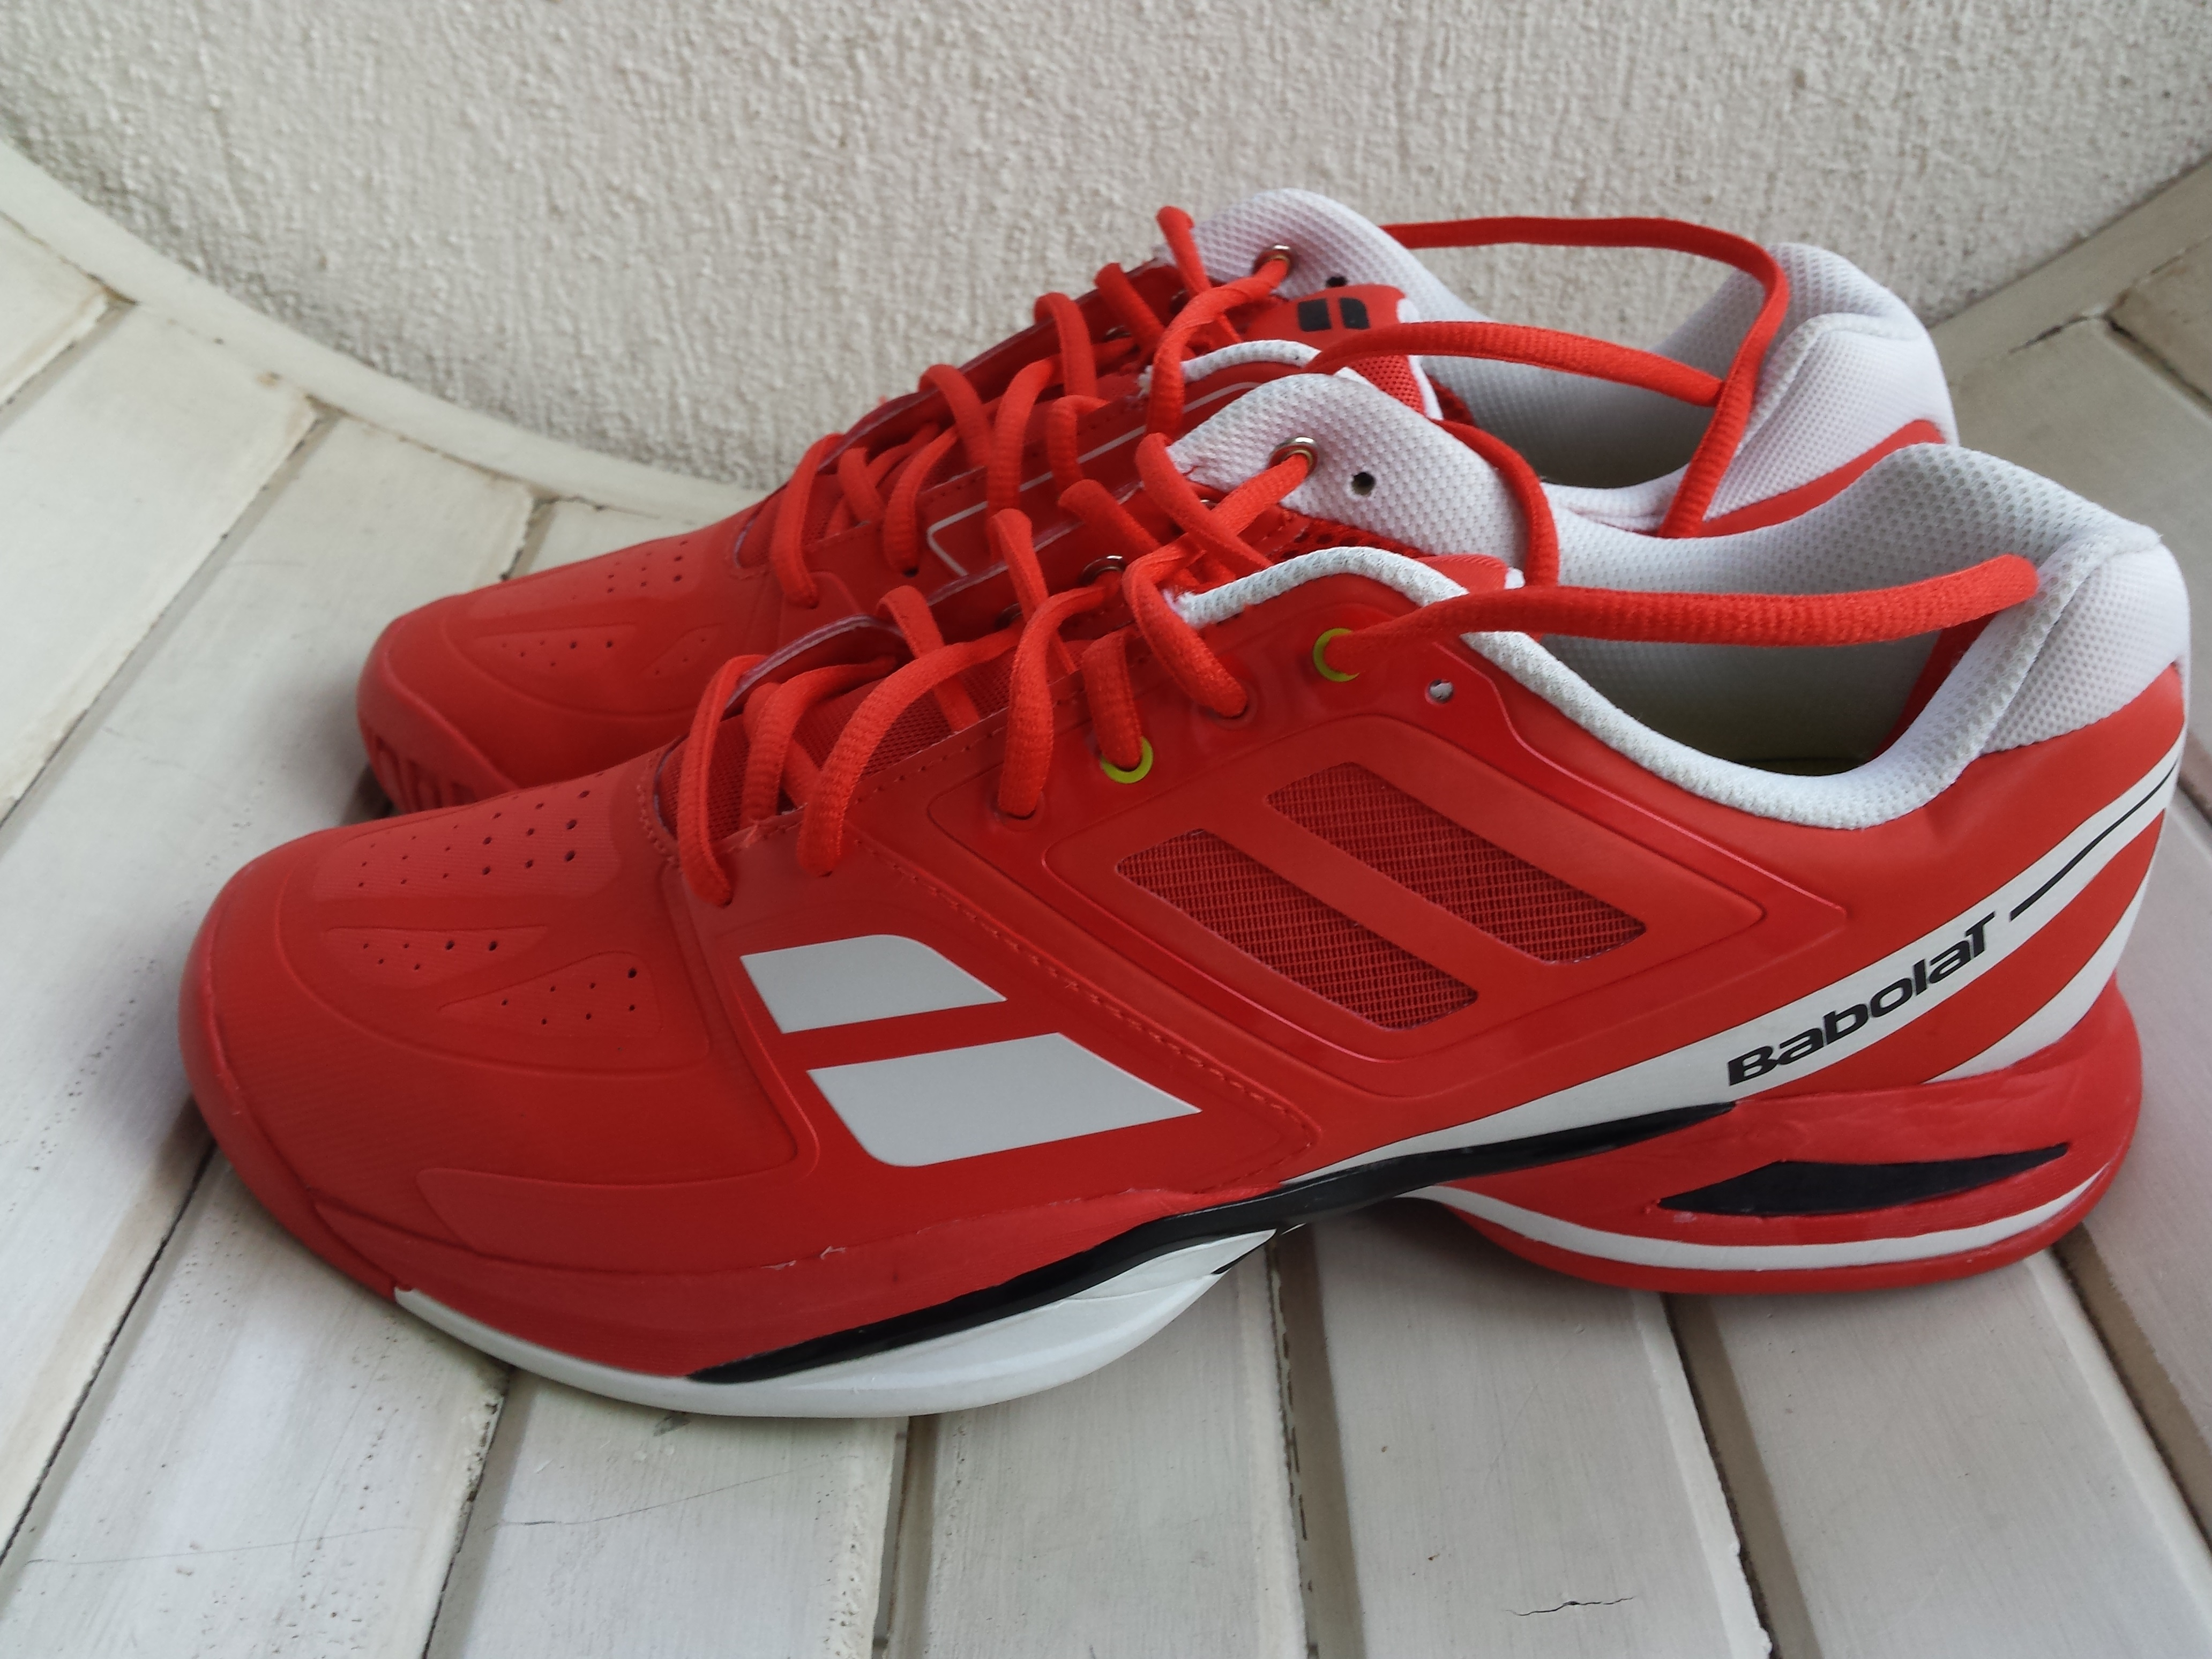 chaussures Babolat Propulse Team BPM taille 45